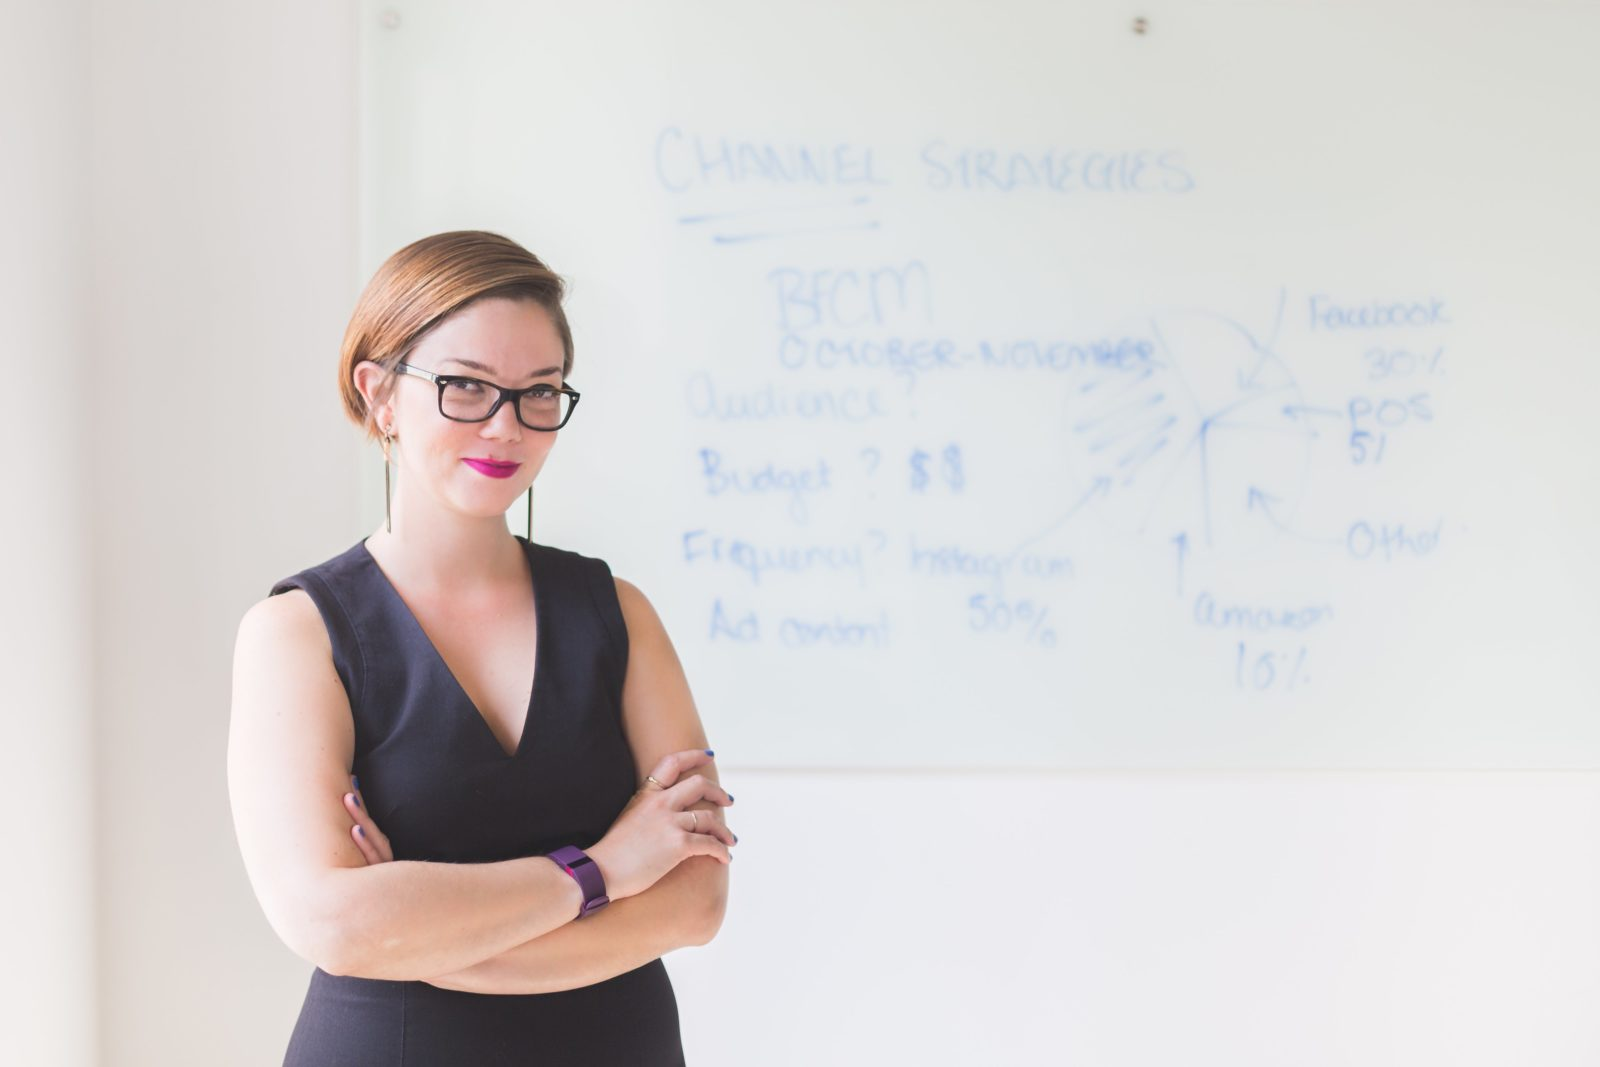 A businesswoman looking confident and smiling, standing in front of a whiteboard in an office space.